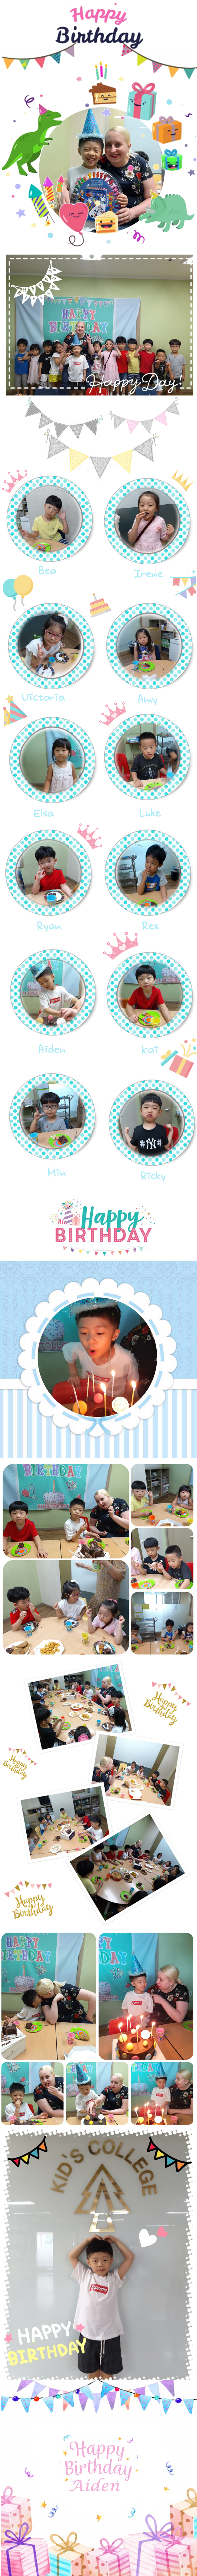 2018_ Birthday Aiden psd copy.jpg